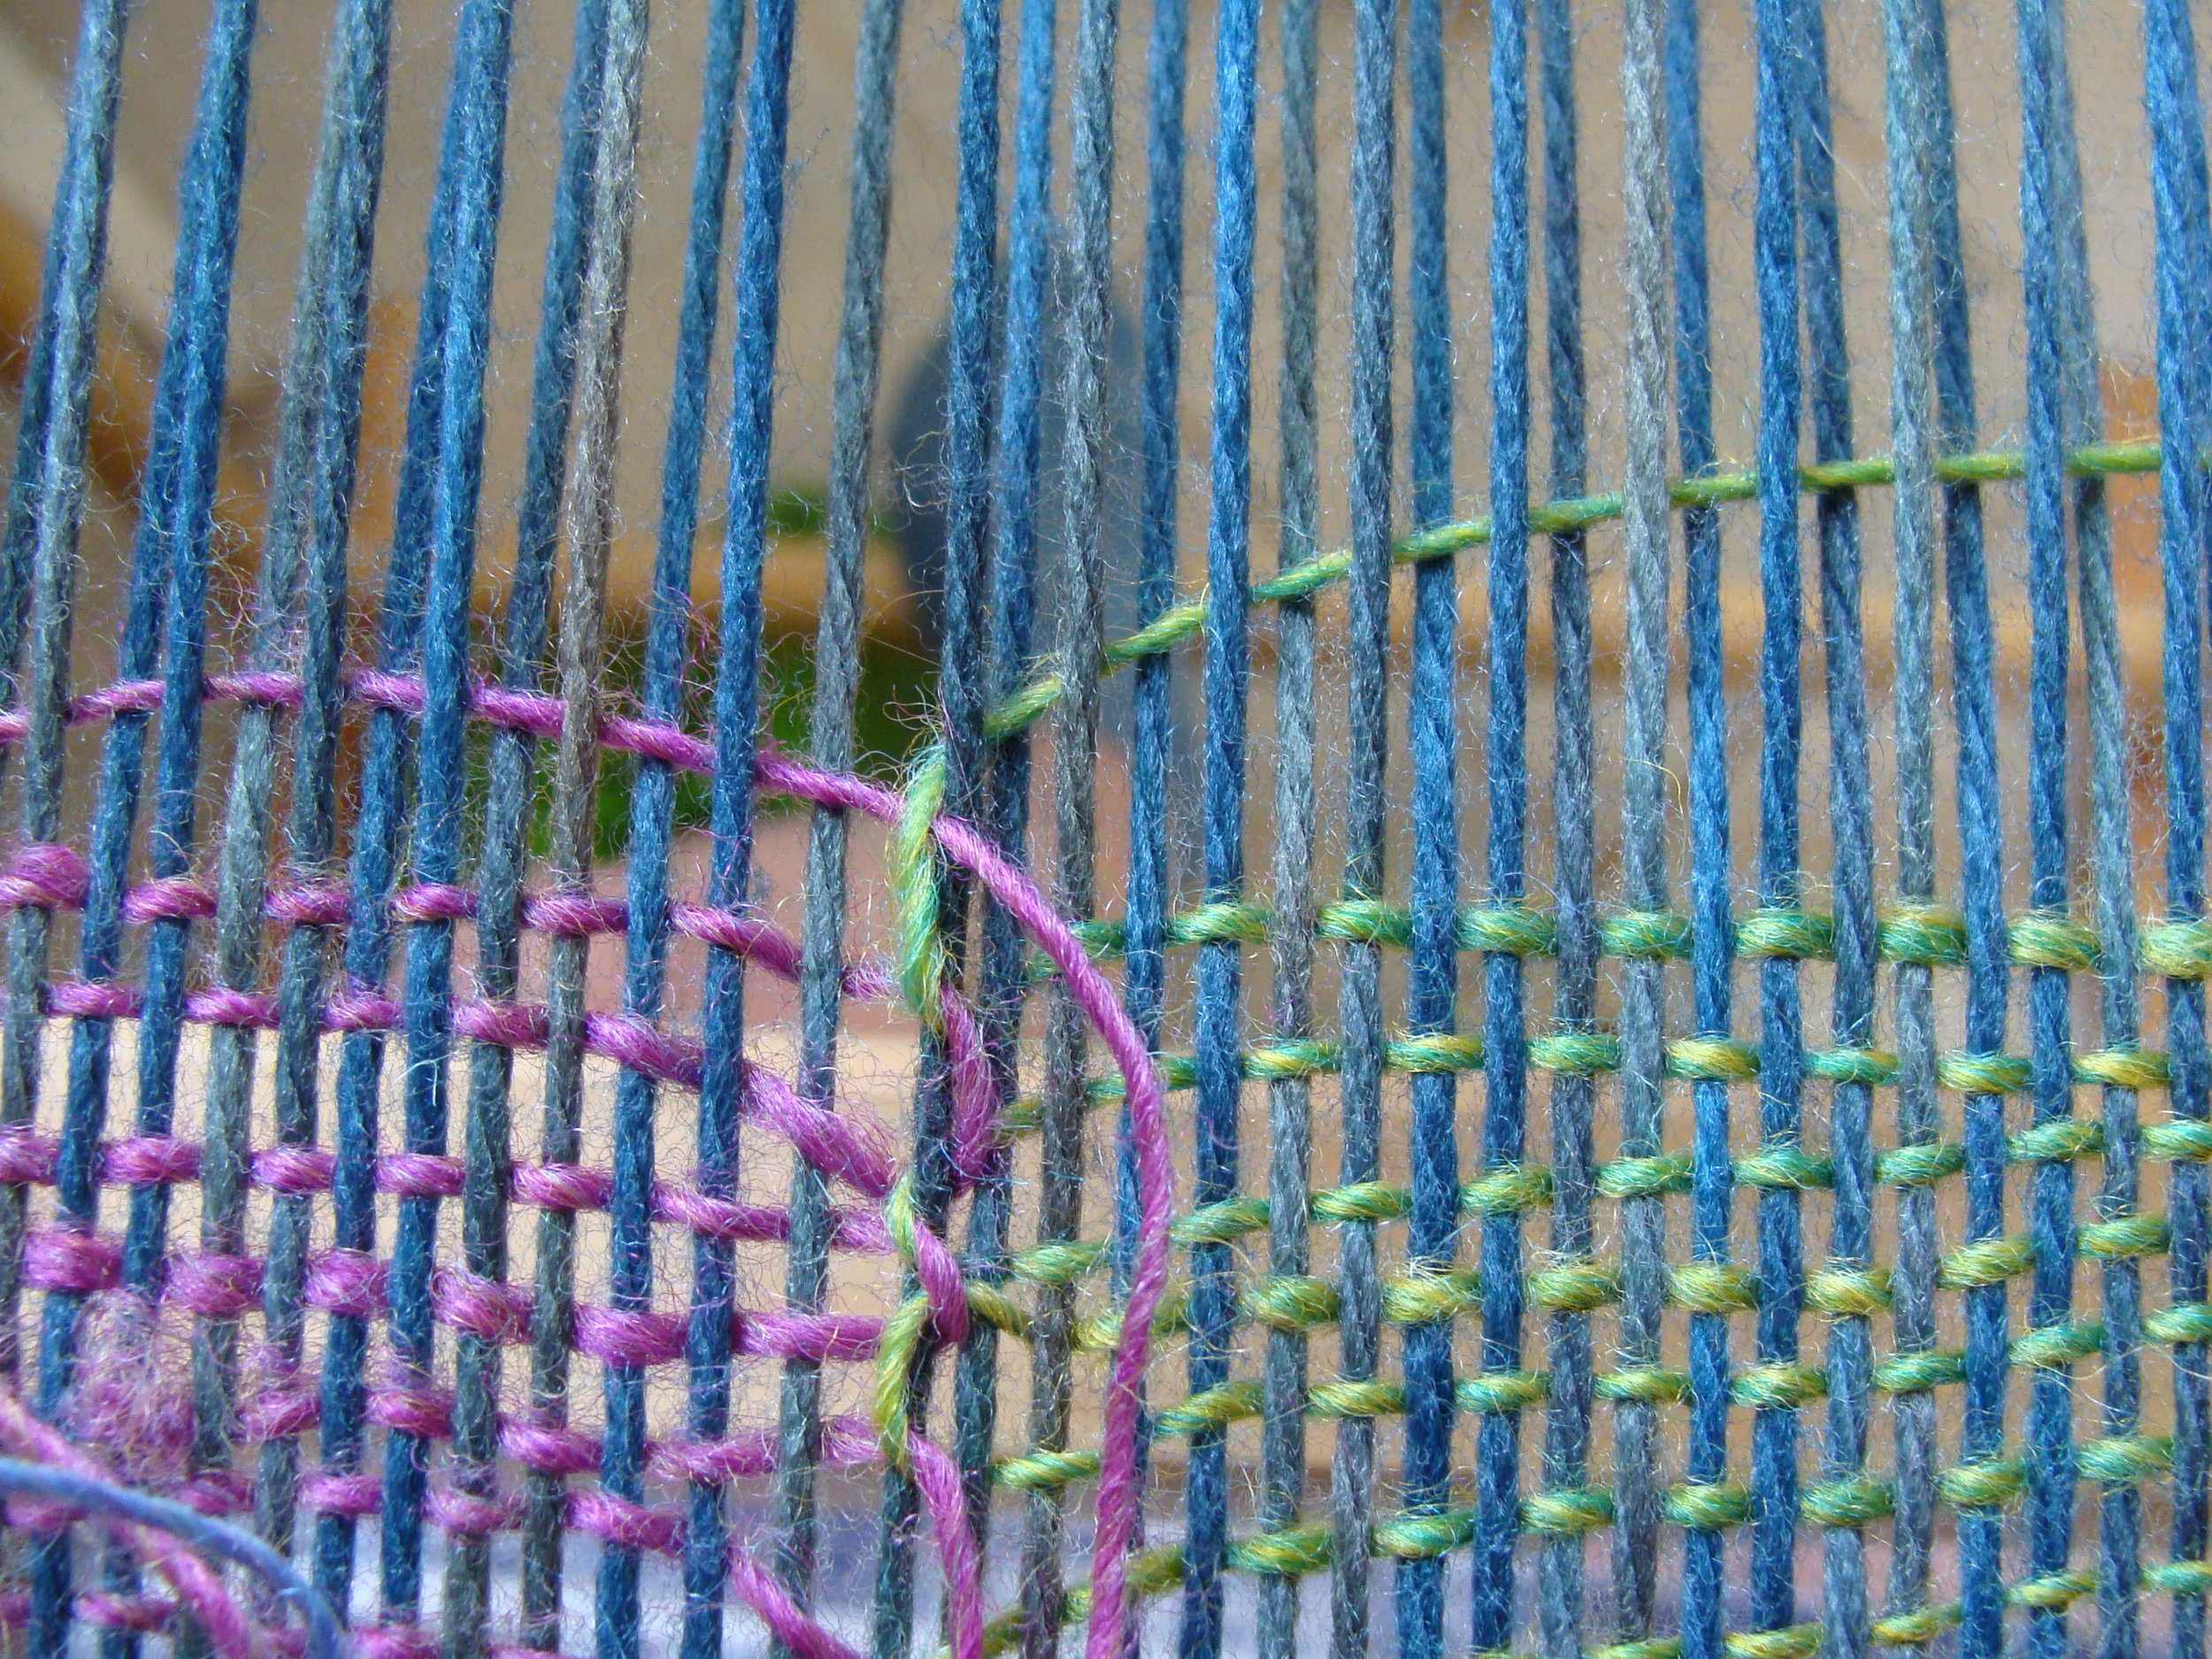 Butterfly #1 (green) interlocks with butterfly #2 (pink) and exits out the row at the opposite selvedge.